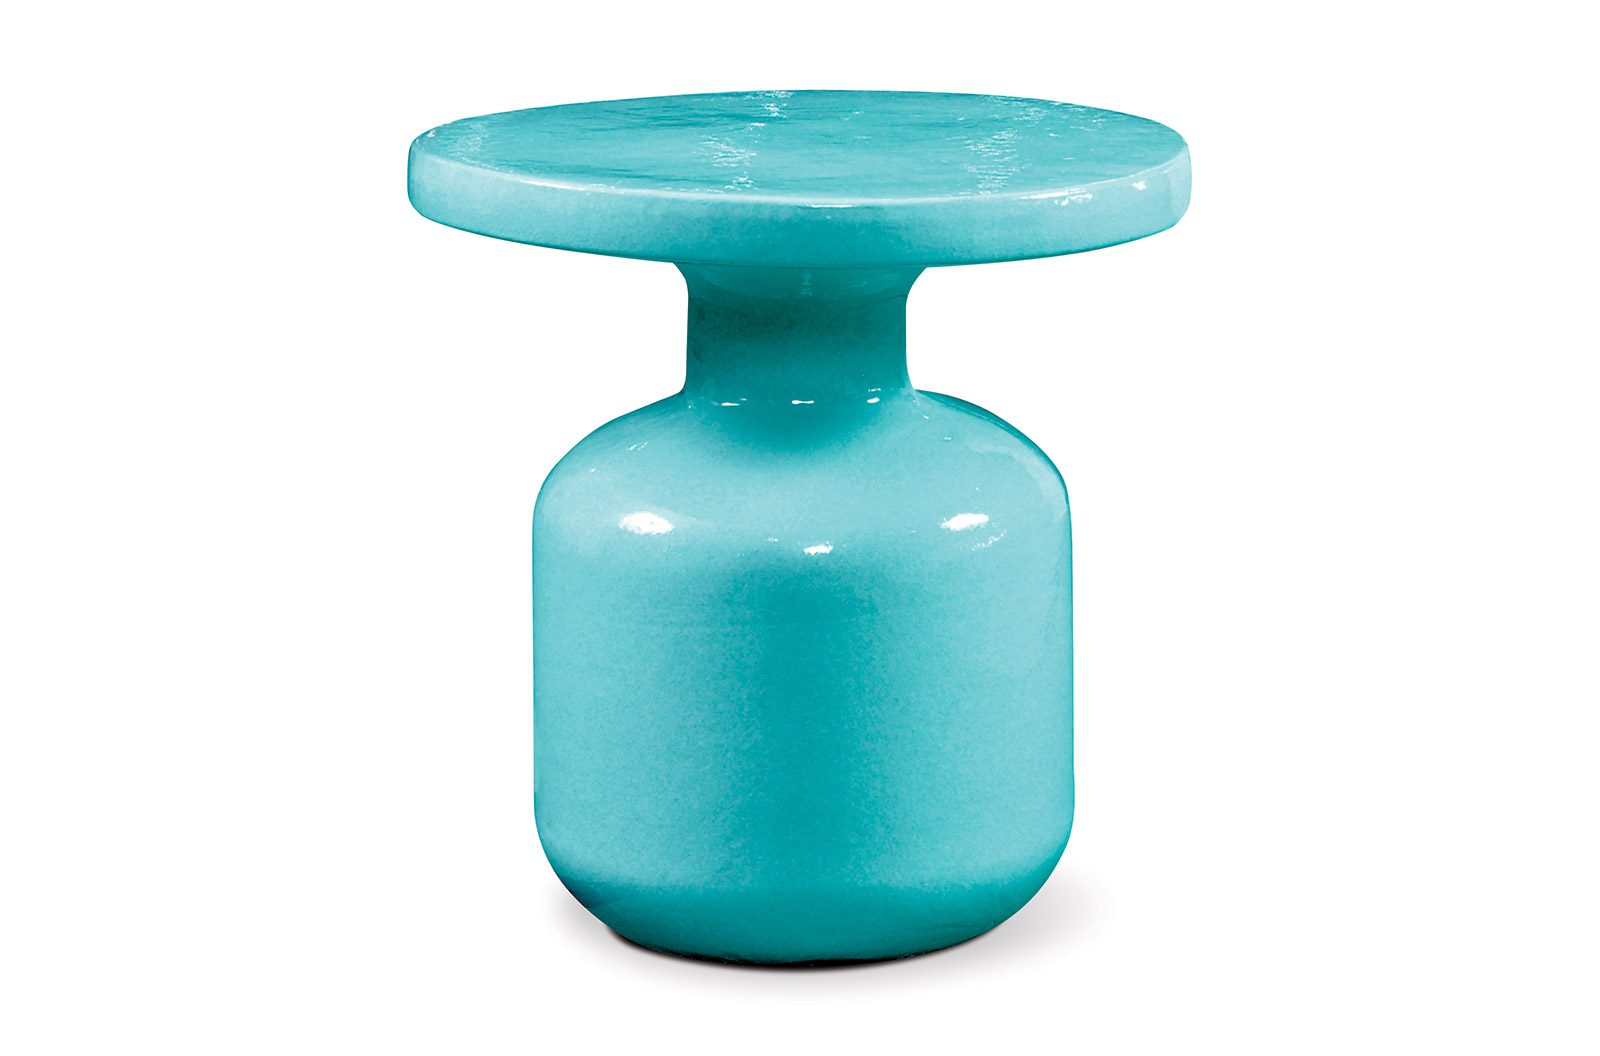 ceramic bottle accent table cer web aqua blue treasure trove end elegant dining room furniture sets lamps countertops oval outdoor inch nightstand work light razer ouroboros elite